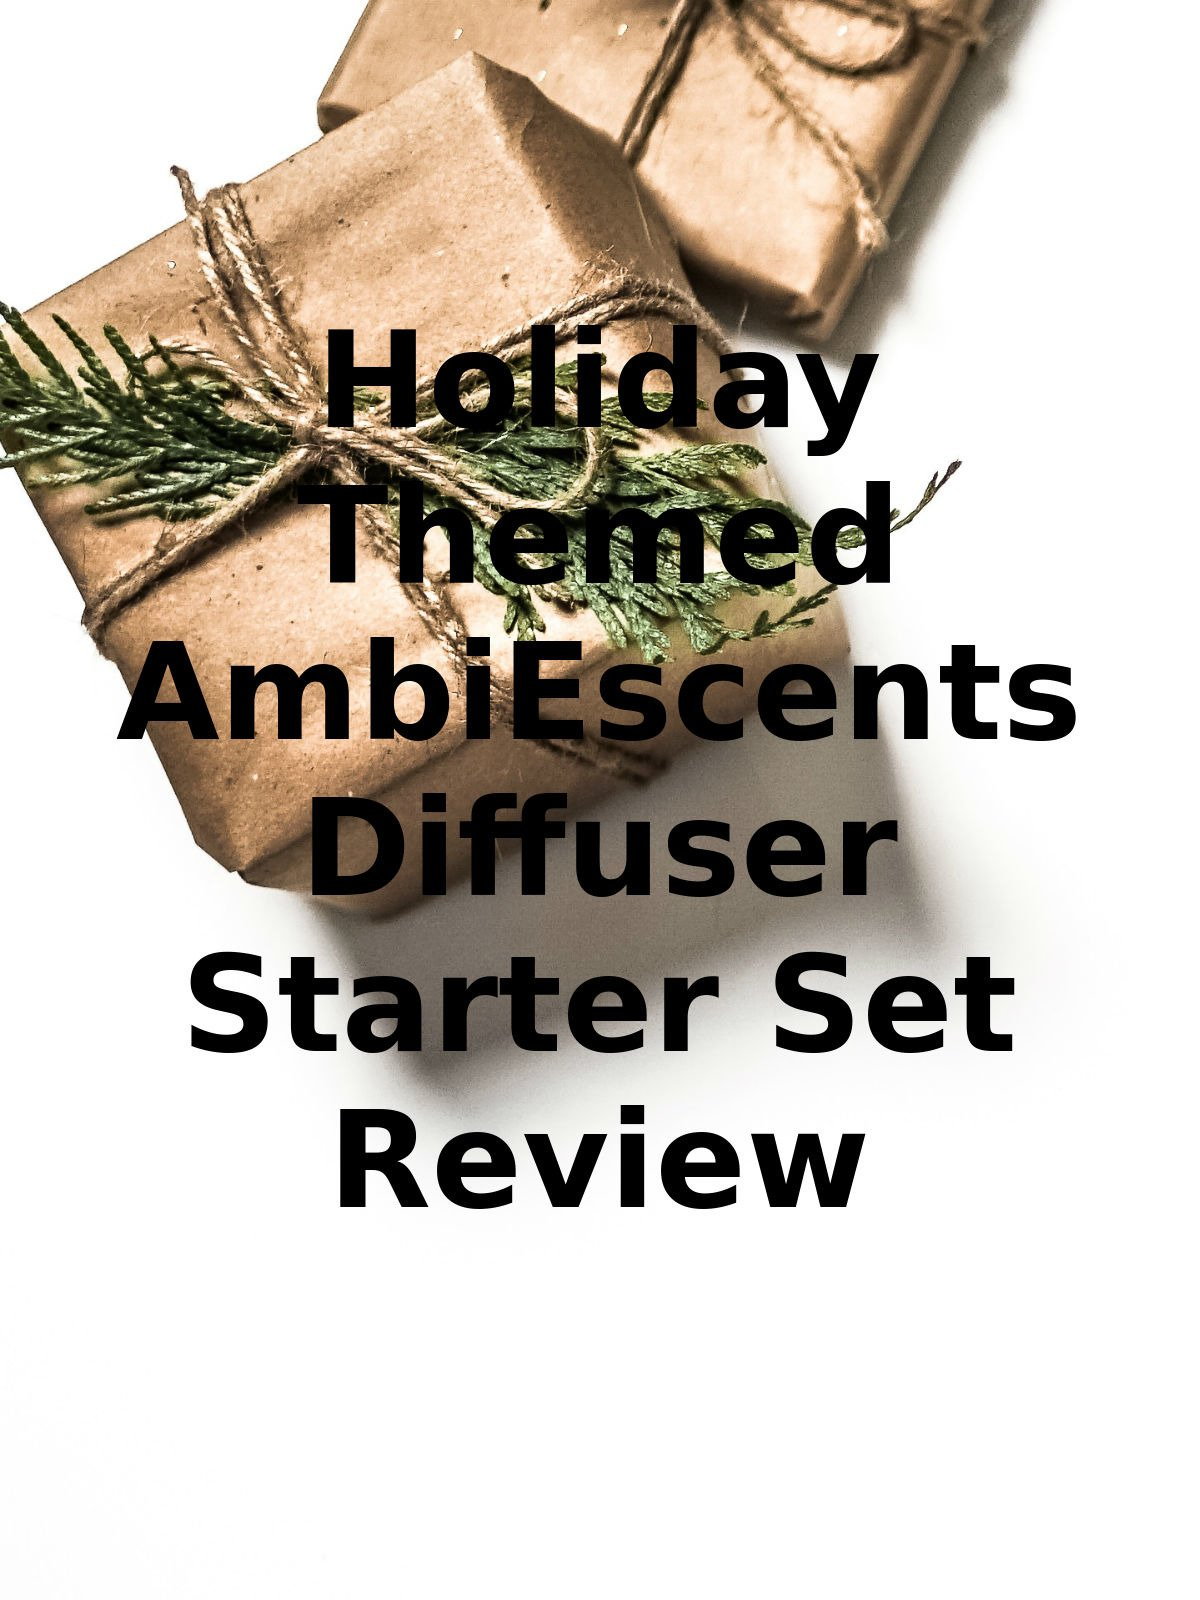 Review: Holiday Themed AmbiEscents Diffuser Starter Set Review on Amazon Prime Video UK